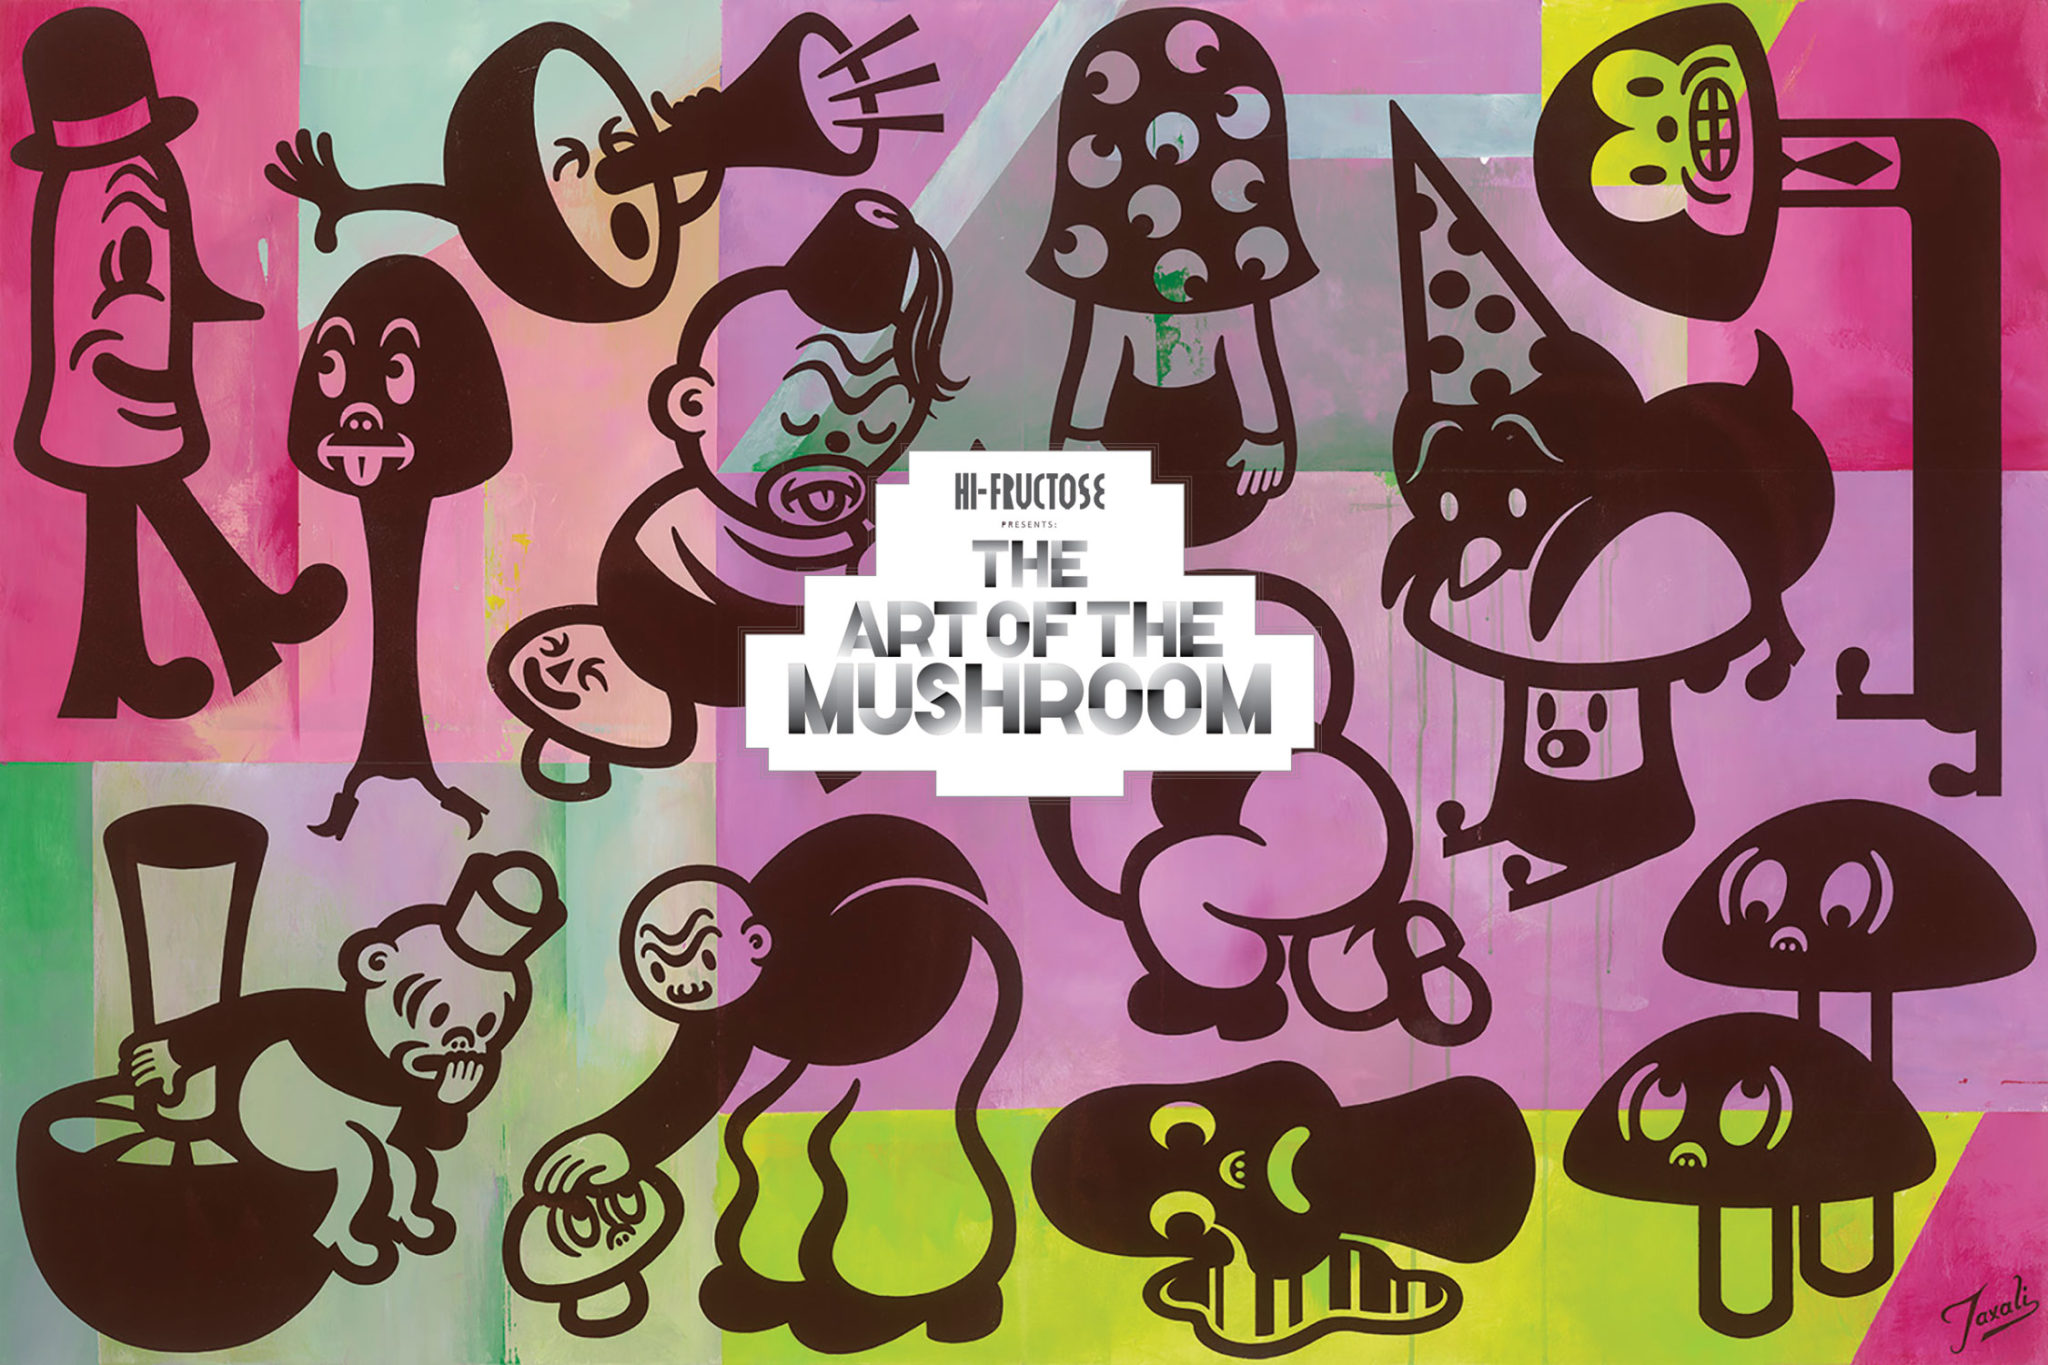 Art of the Mushroom